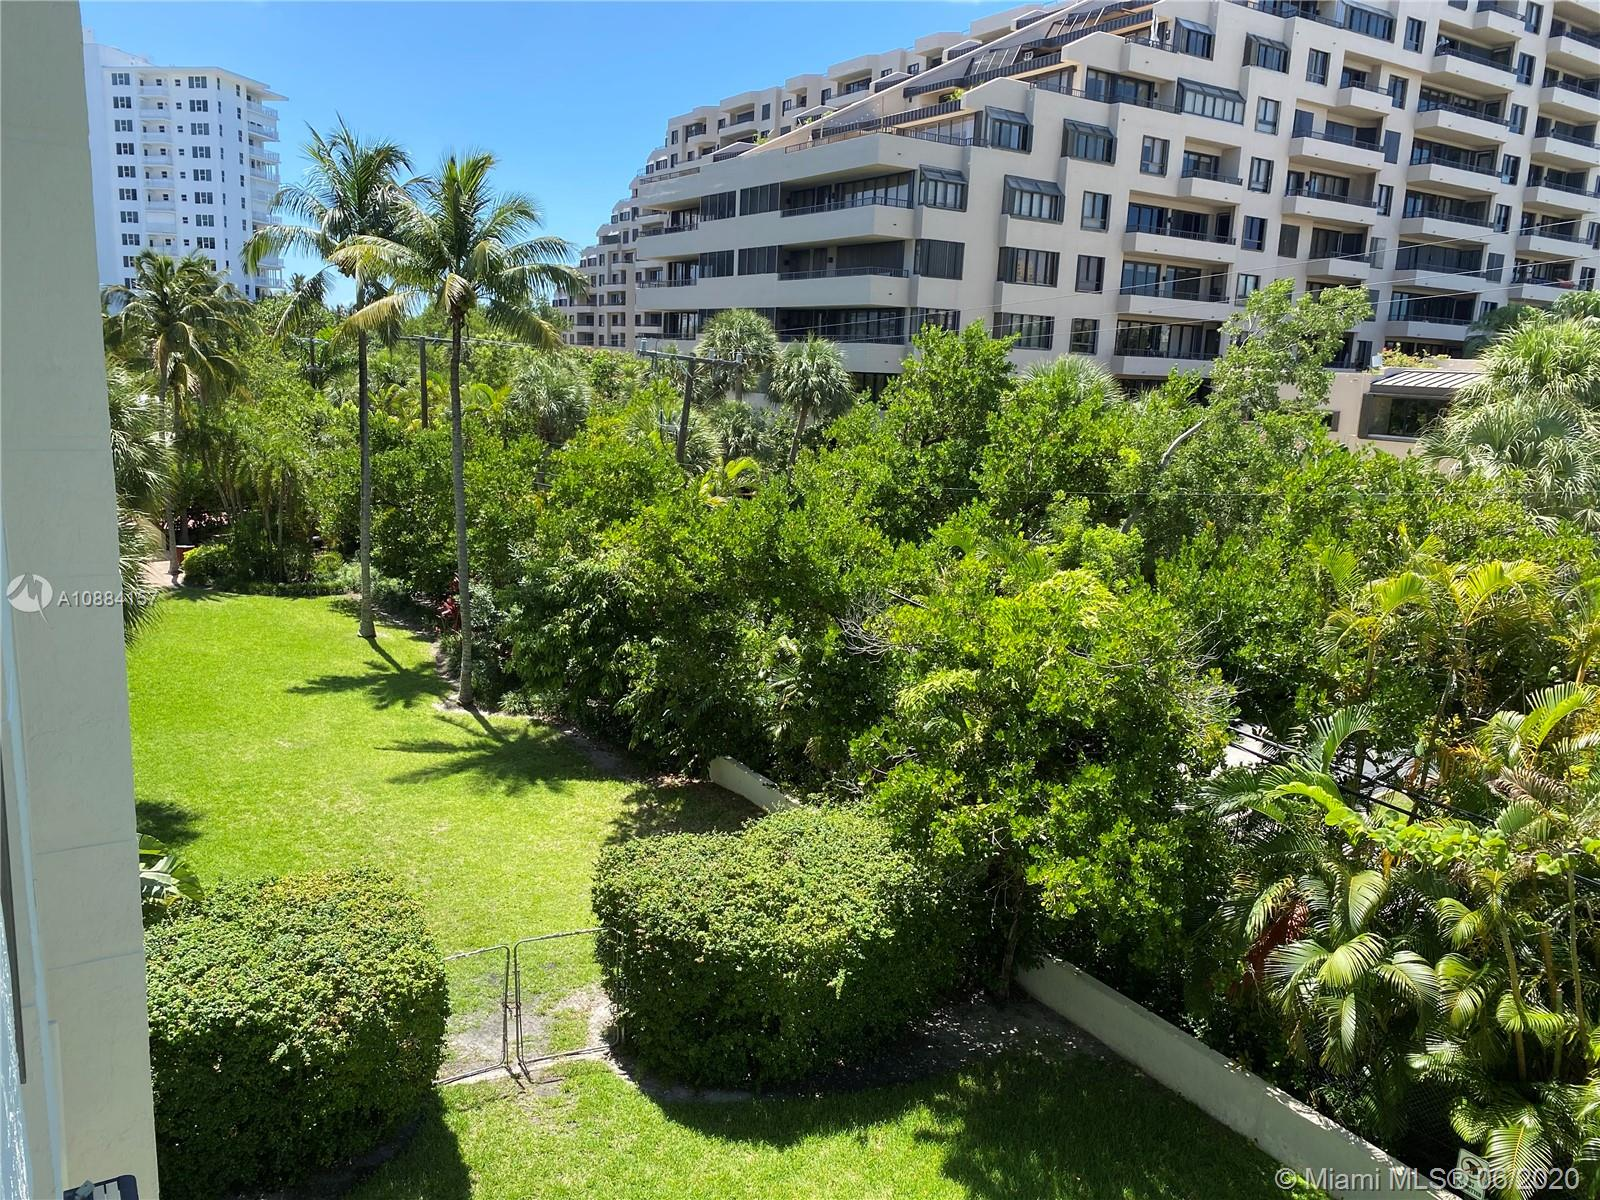 Spacious and bright 2BED / 2BATH CORNER UNIT, with upgraded kitchen and bathrooms and in-unit washer/dryer.Full service building with 24-hr front desk, heated pool, open green spaces, fitness room and brand new party room.UNIT HAS 2 ASSIGNED & COVERED PARKING SPACES.